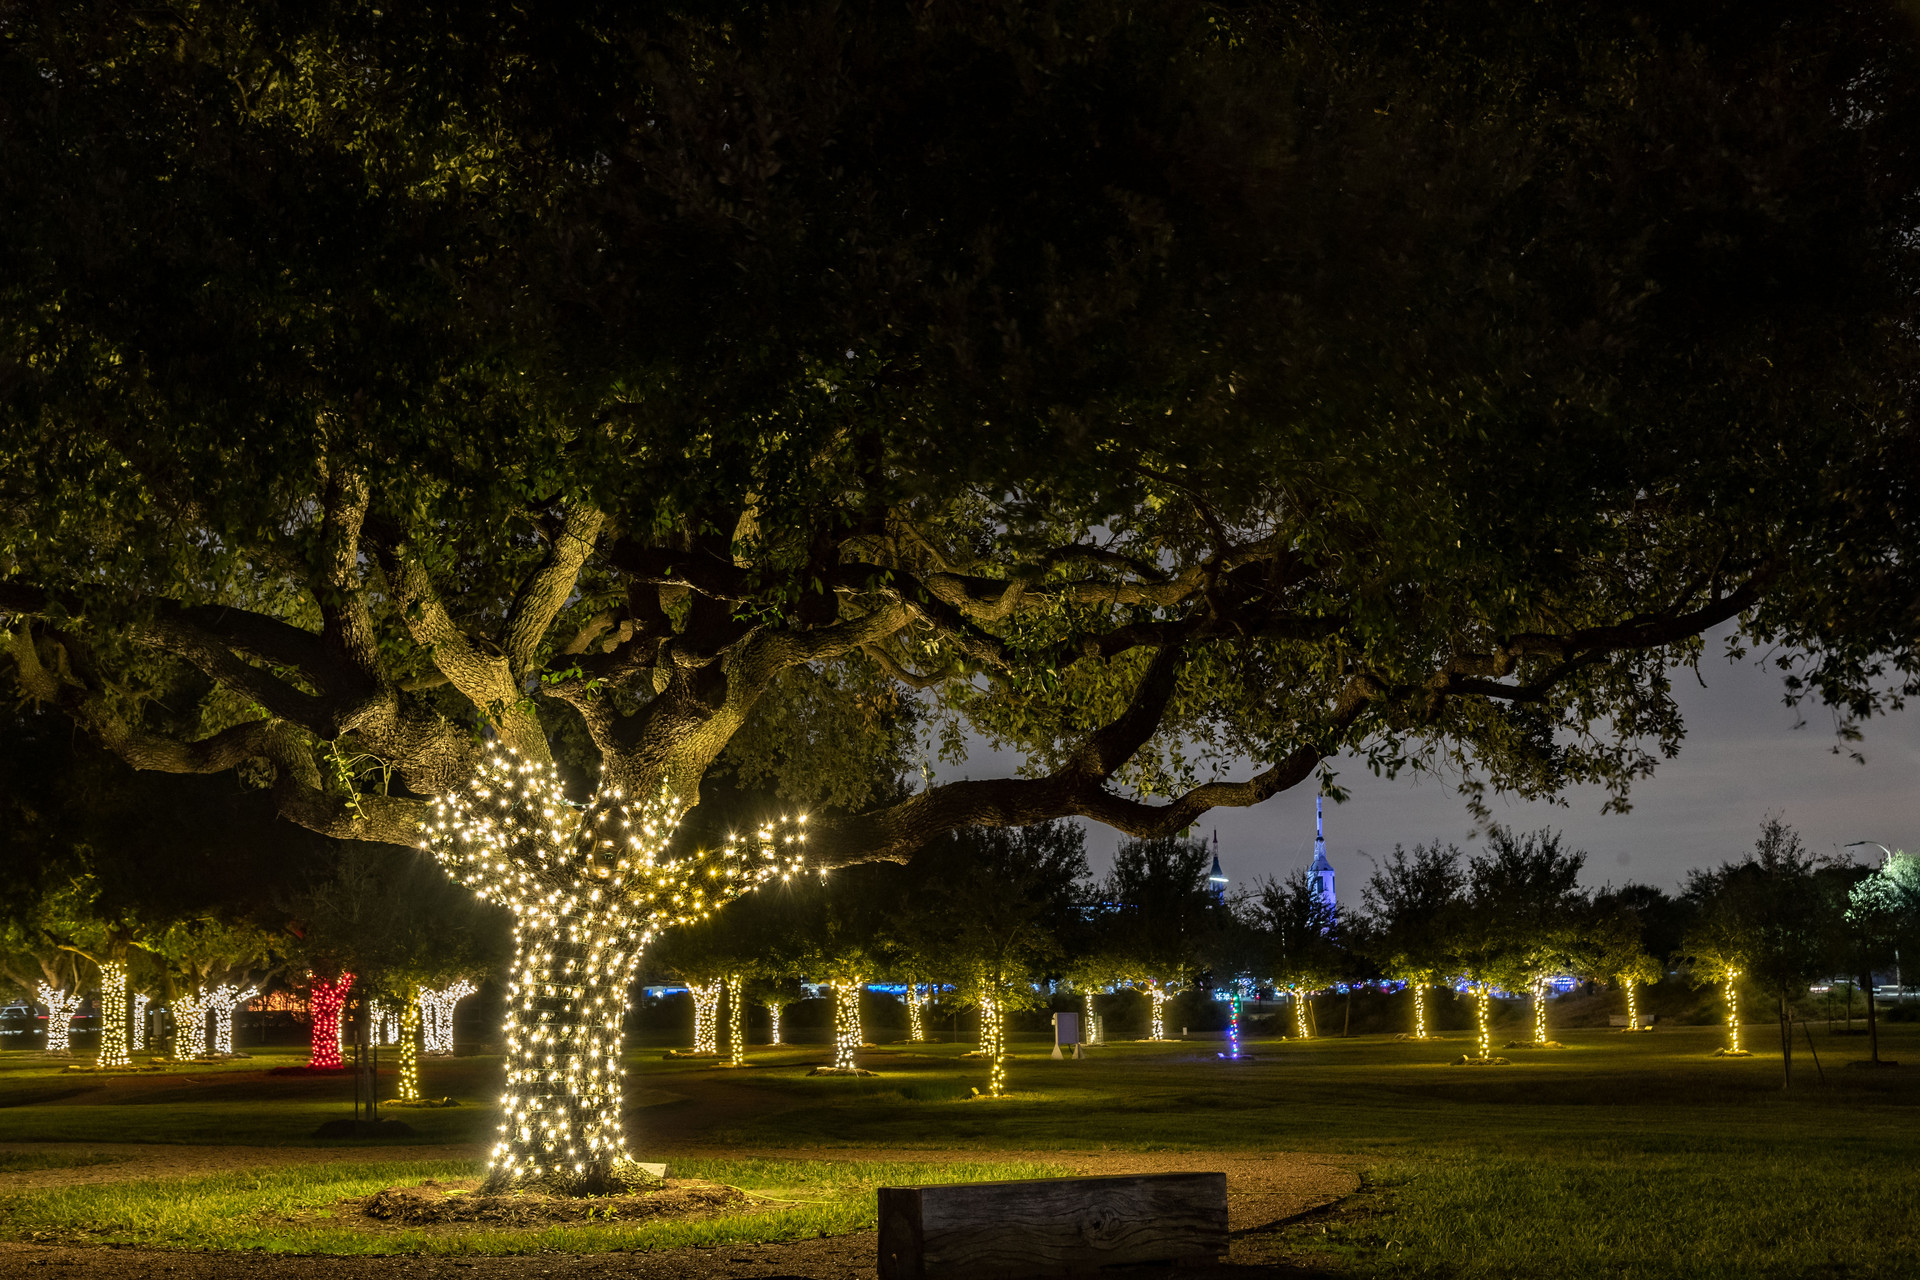 """The Astronaut Memorial Tree Grove at Johnson Space Center is decorated with lights every year for the holiday season. Alan Bean said during Pete Conrad's memorial service, """"Pete wants his tree to be special—the most colorful tree—because his motto is, 'When you can't be good, be colorful.'"""" After which Pete Conrad's tree was always decorated in red lights. Alan Bean's tree is new this year, 2019, and can be seen decorated in colored lights."""